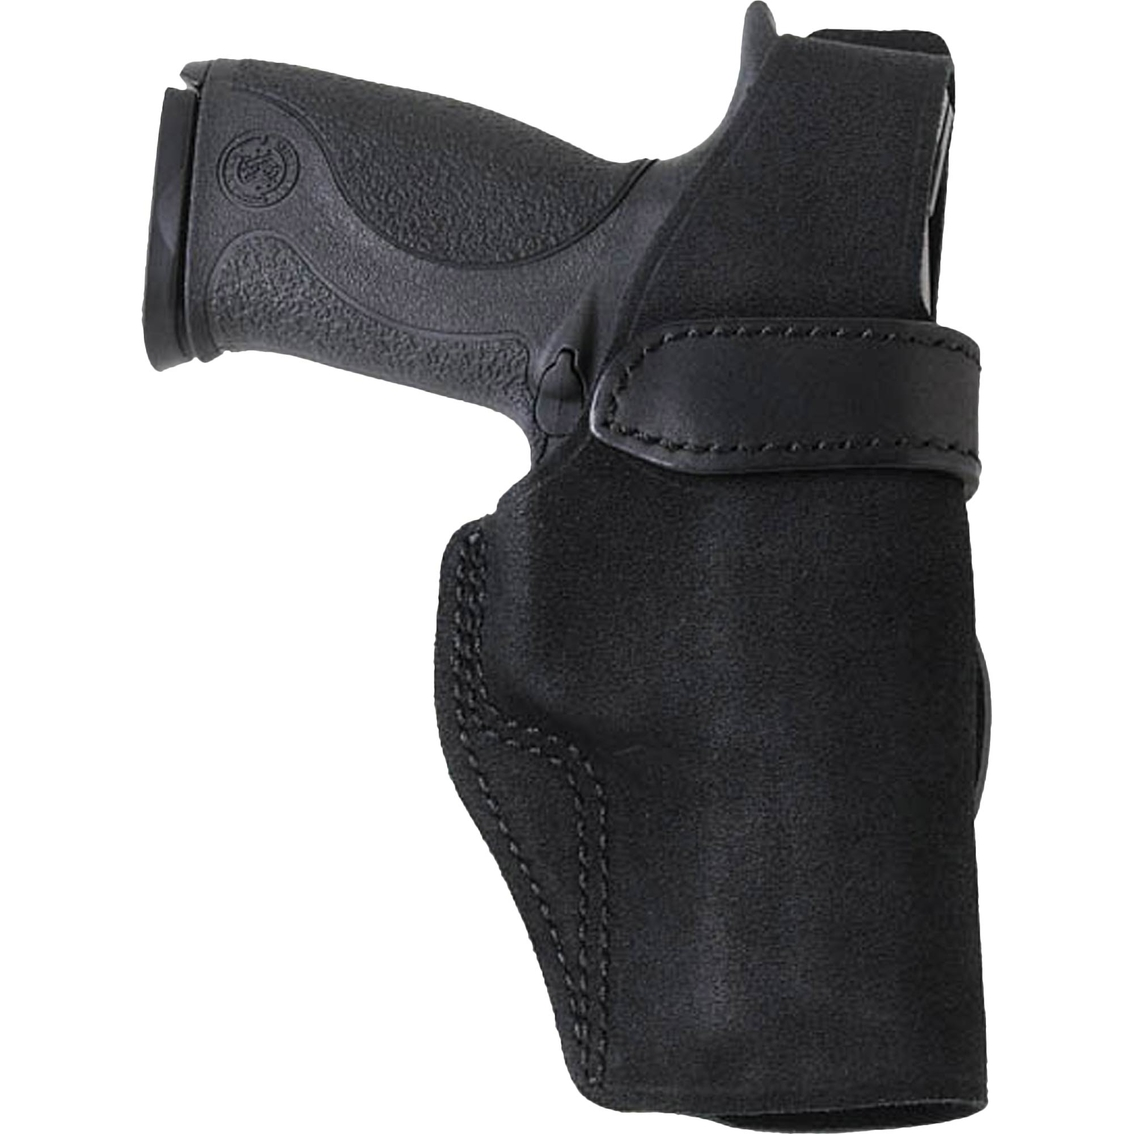 Galco Wraith Belt Holster Glock 17/22/31 Right Hand | Holsters